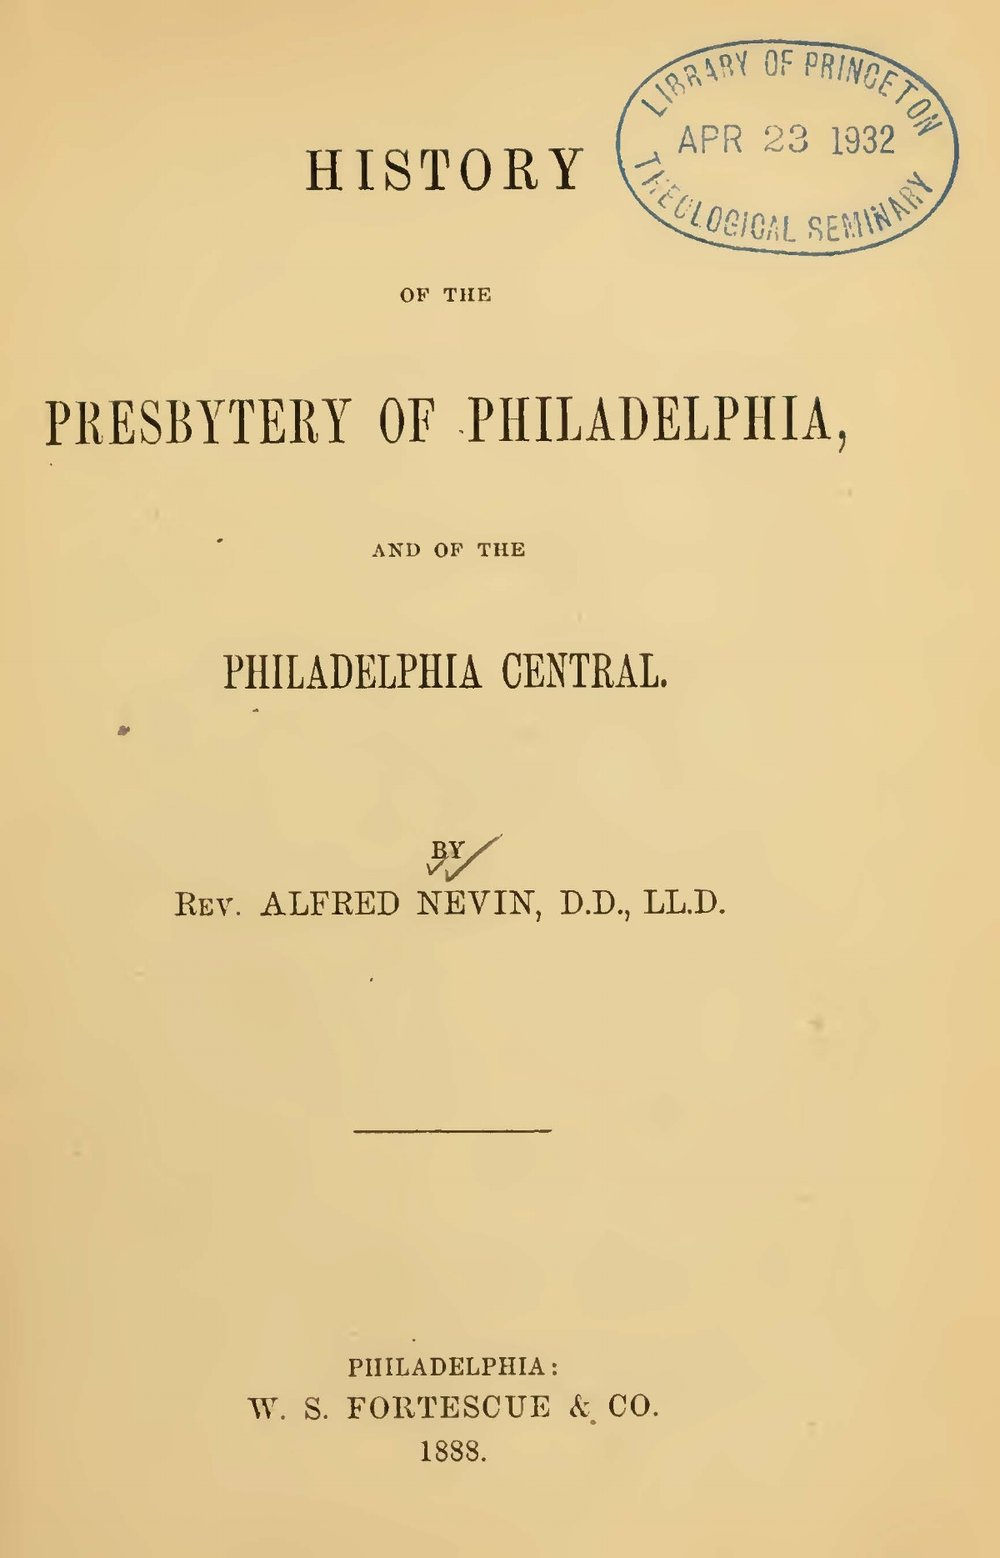 Nevin, Alfred, History of the Presbytery of Philadelphia, and of the Philadelphia Central Title Page.jpg